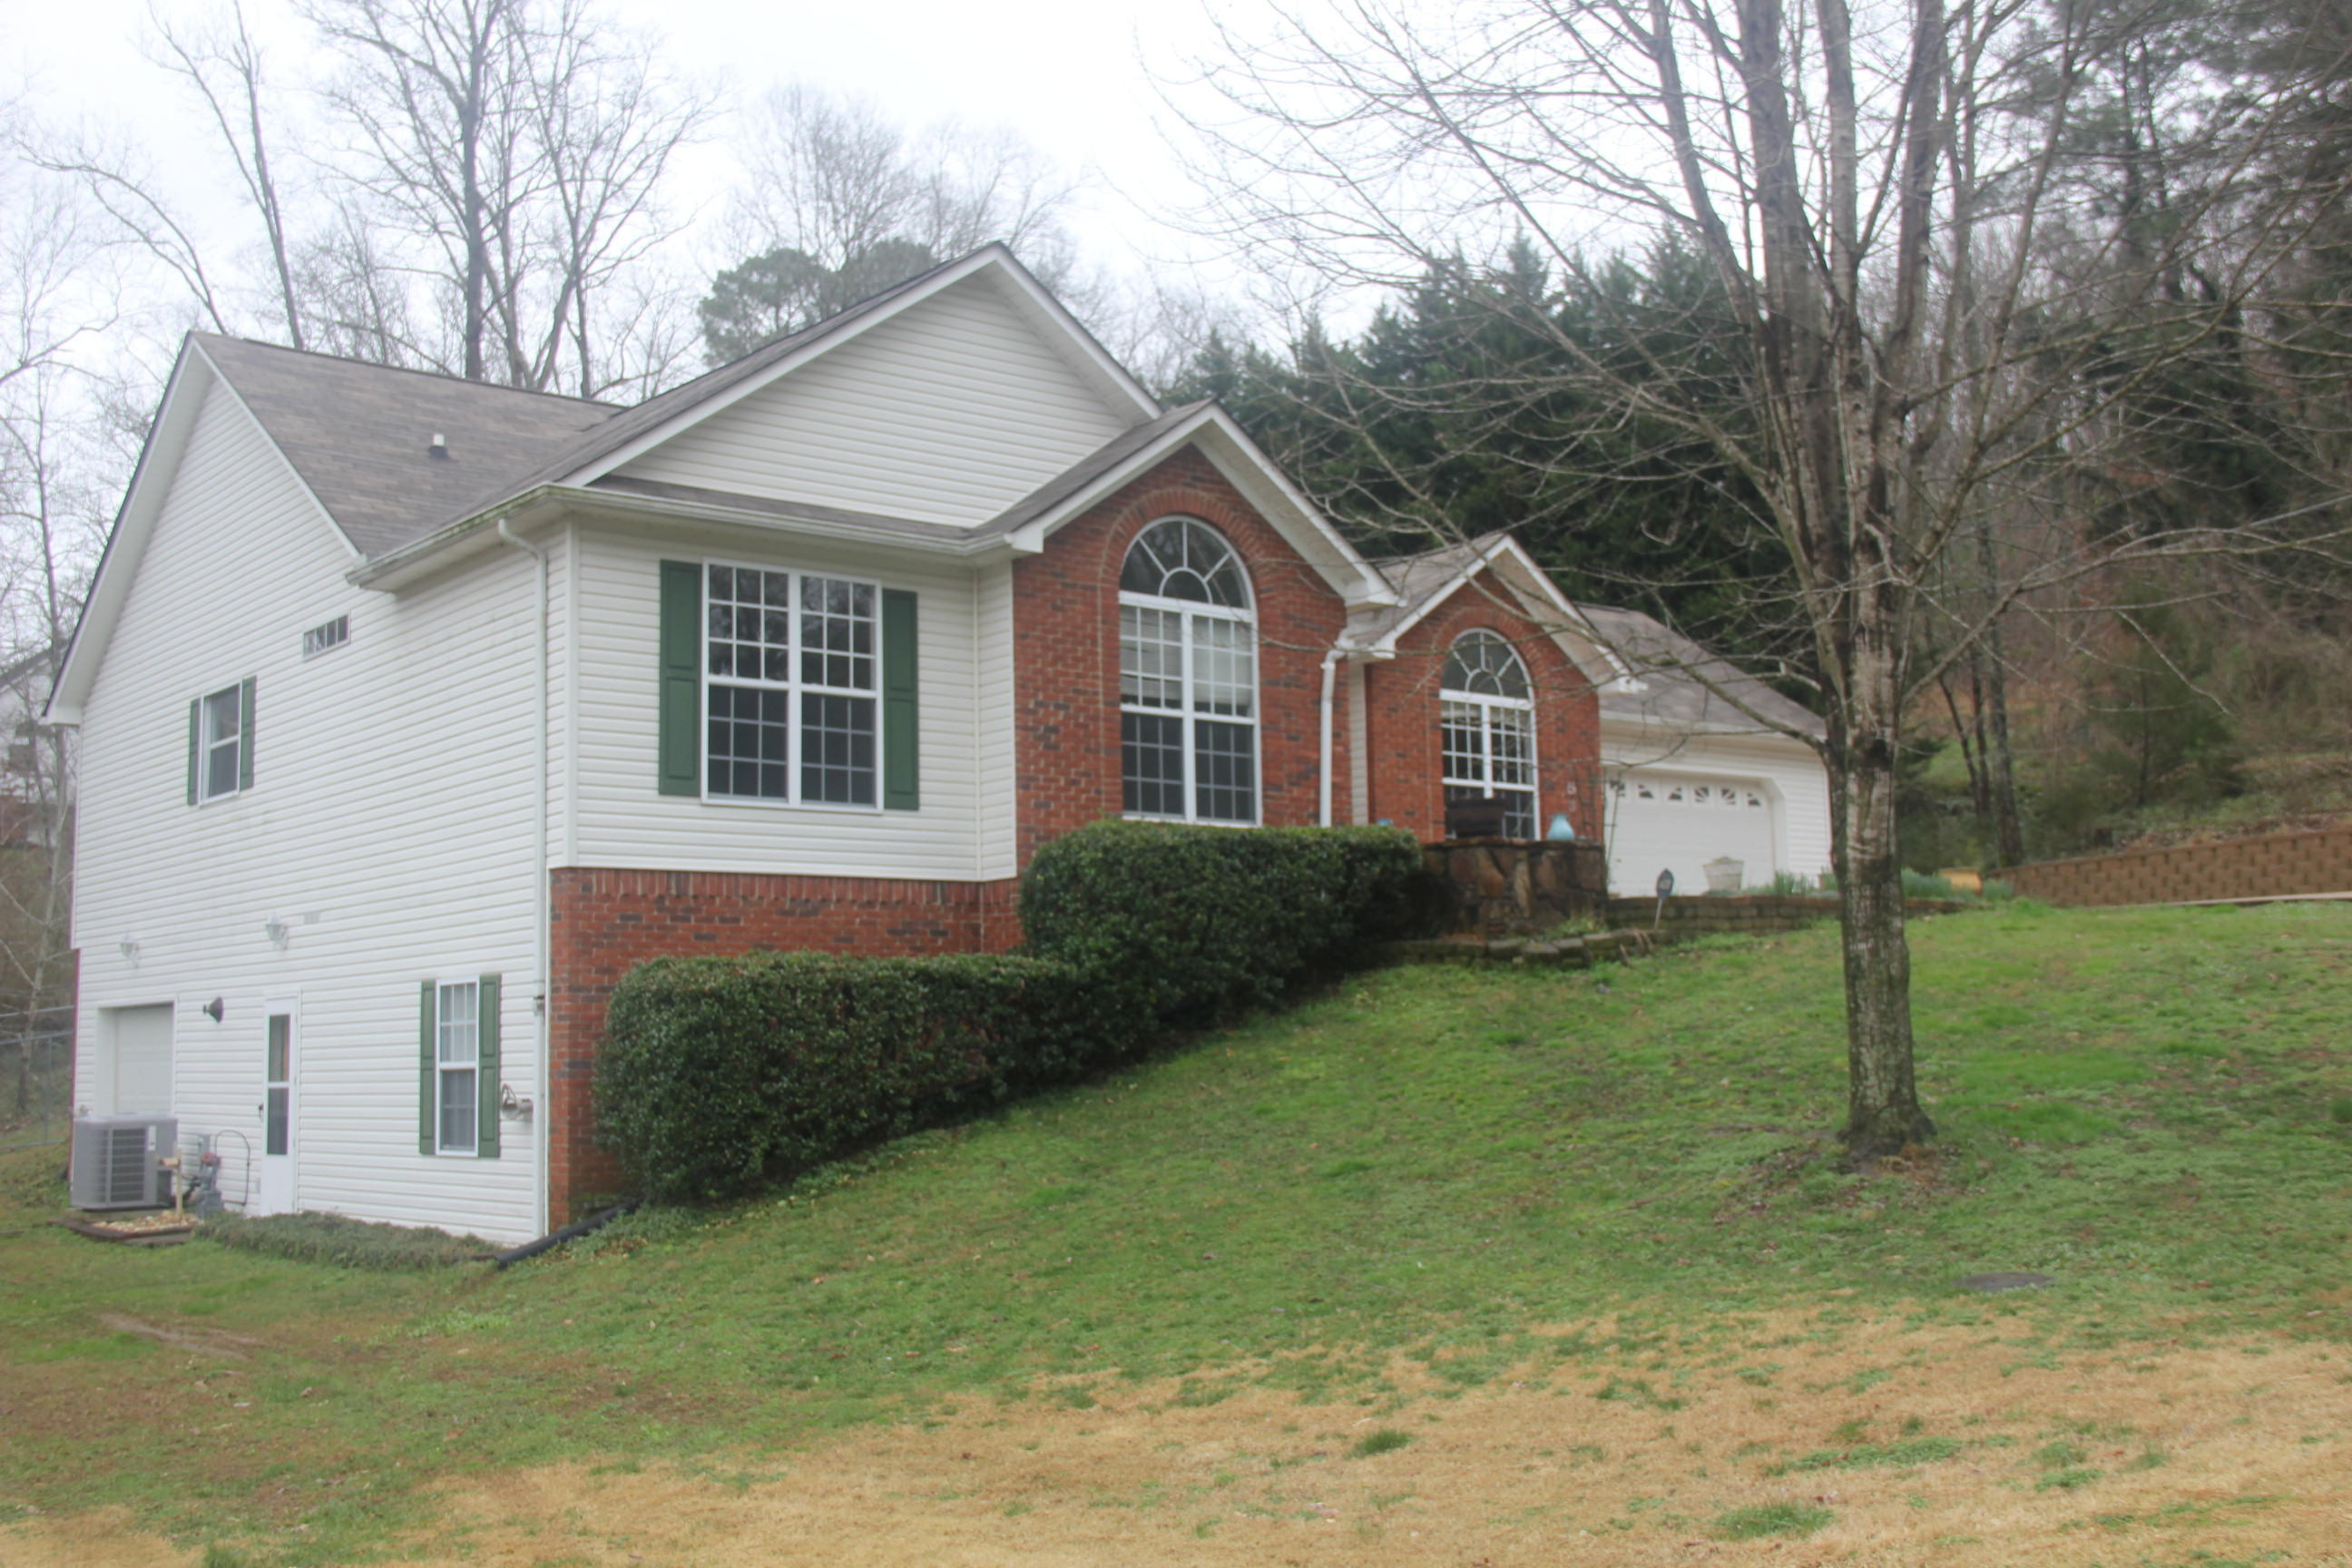 153 Nw Heather Ln, Cleveland, TN 37311